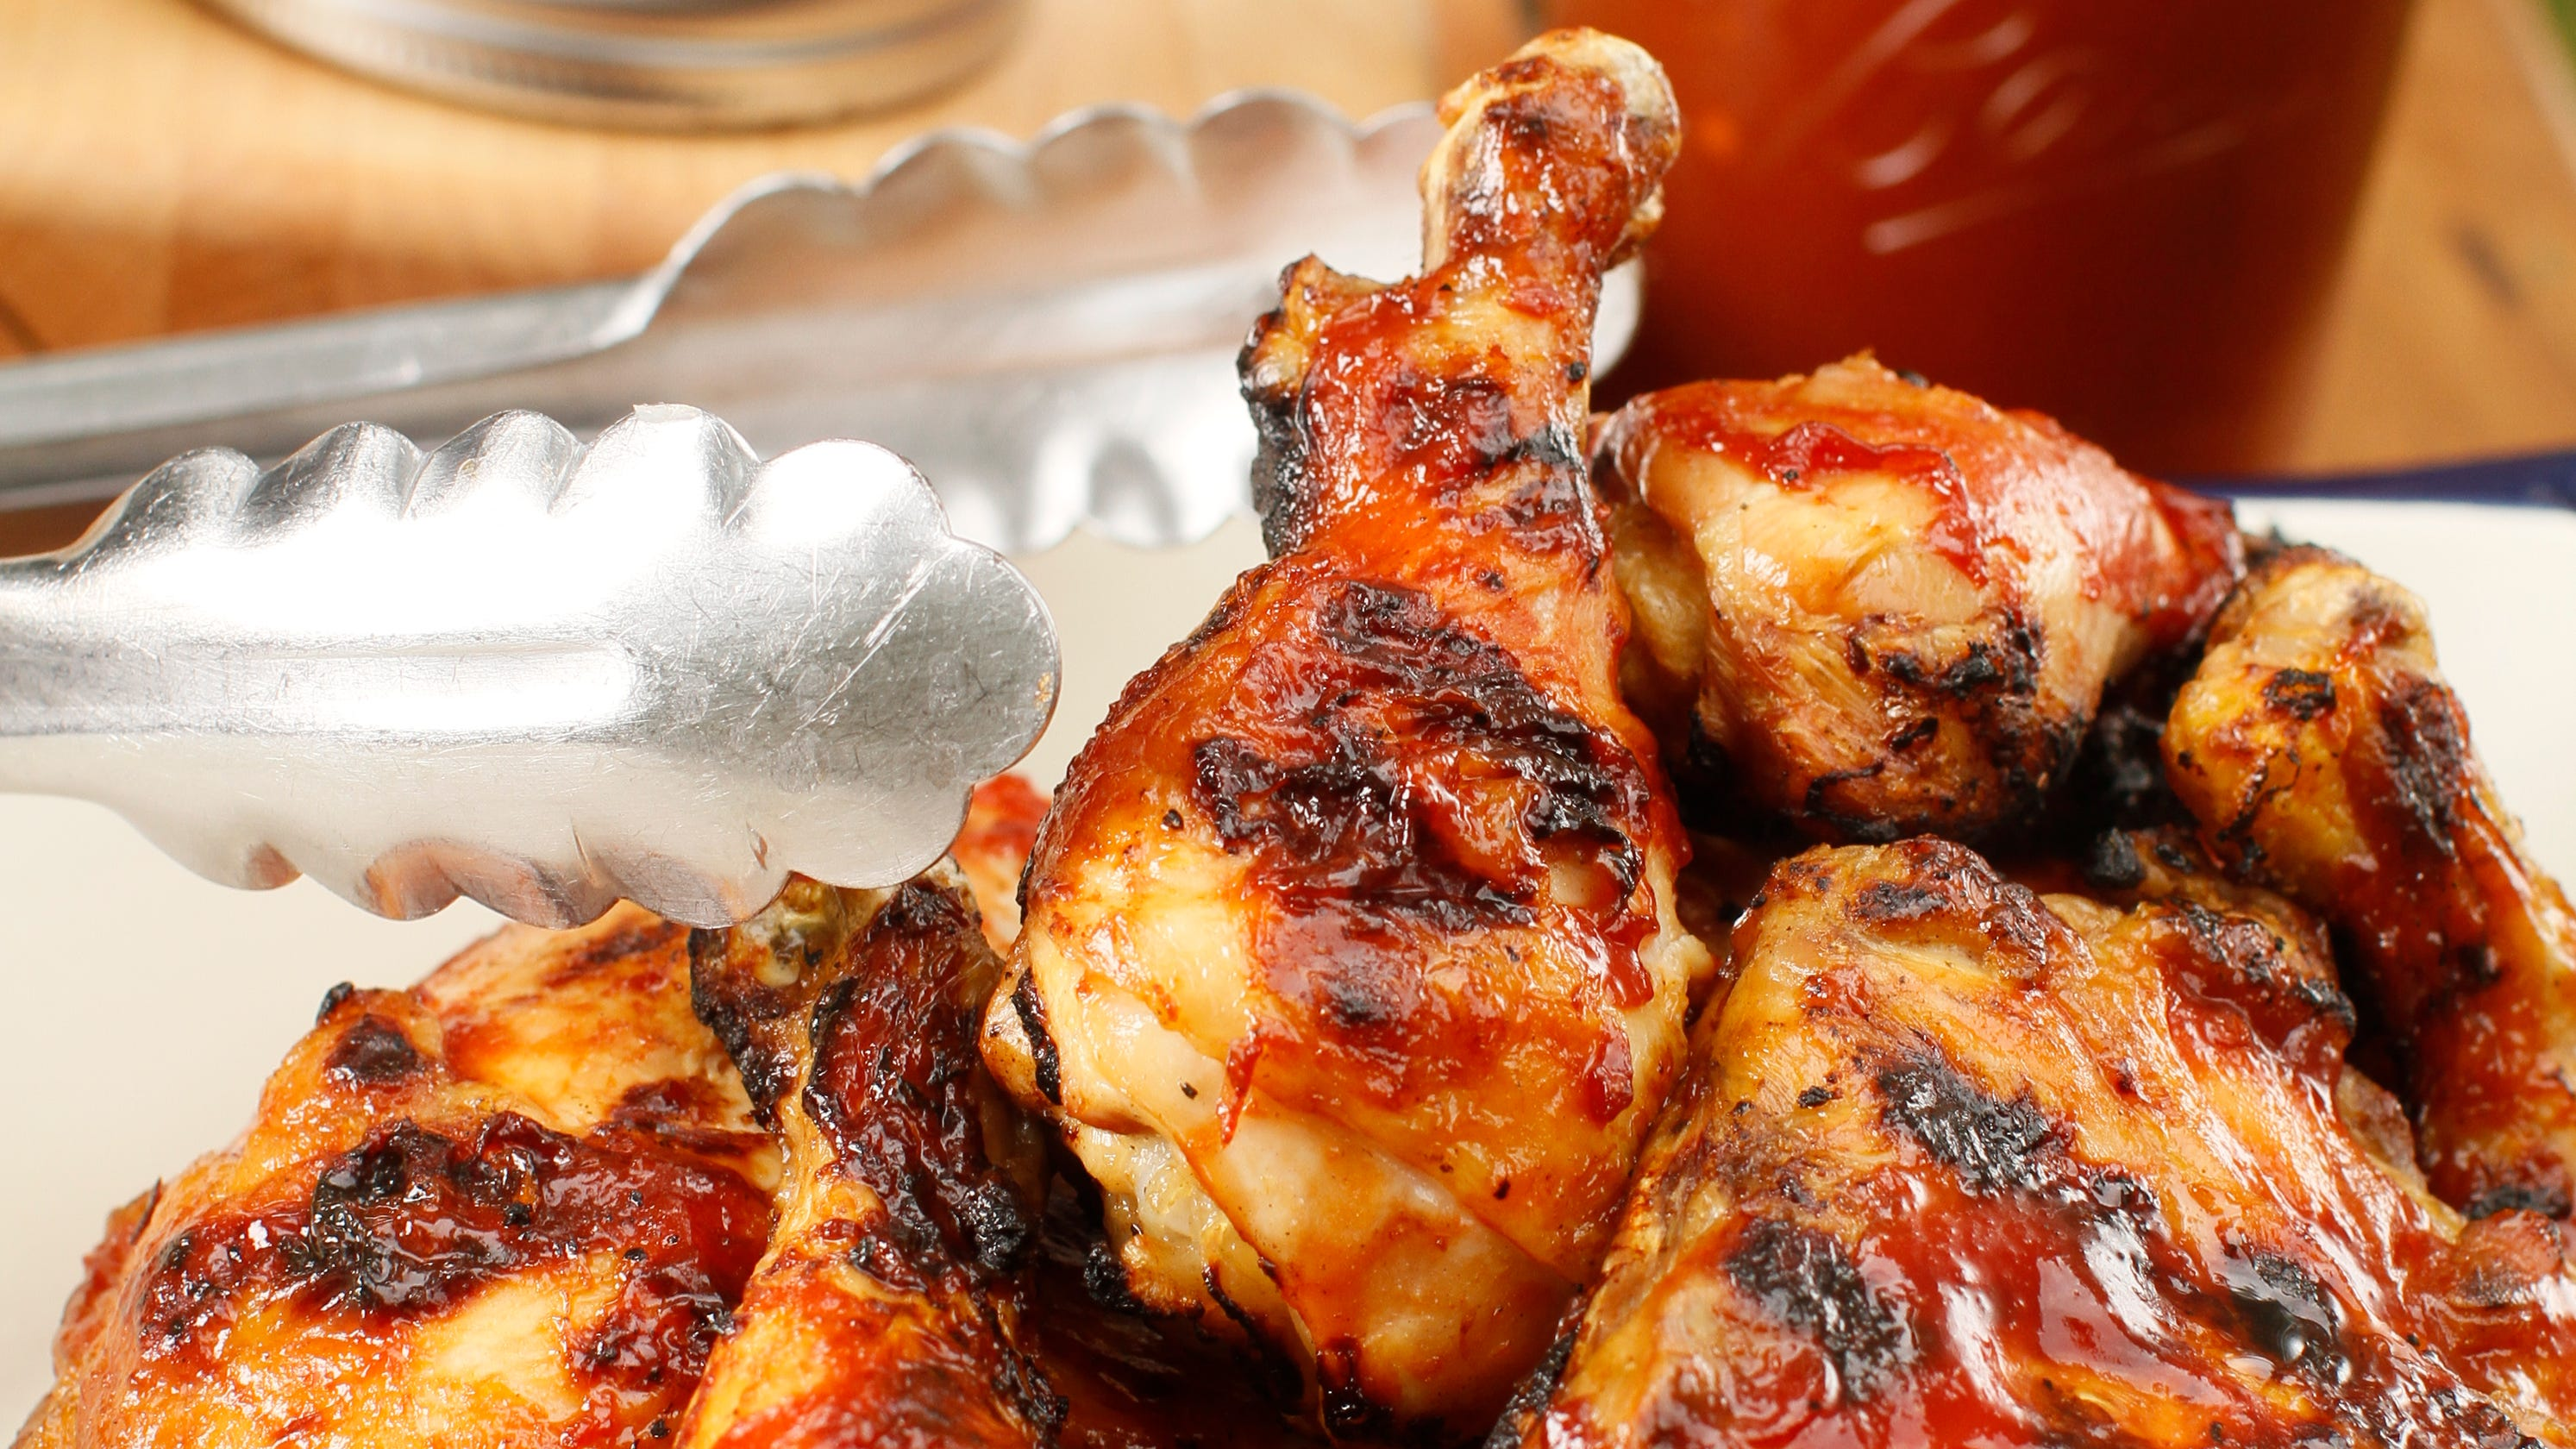 Five tips to help you grill barbecue chicken like a pro